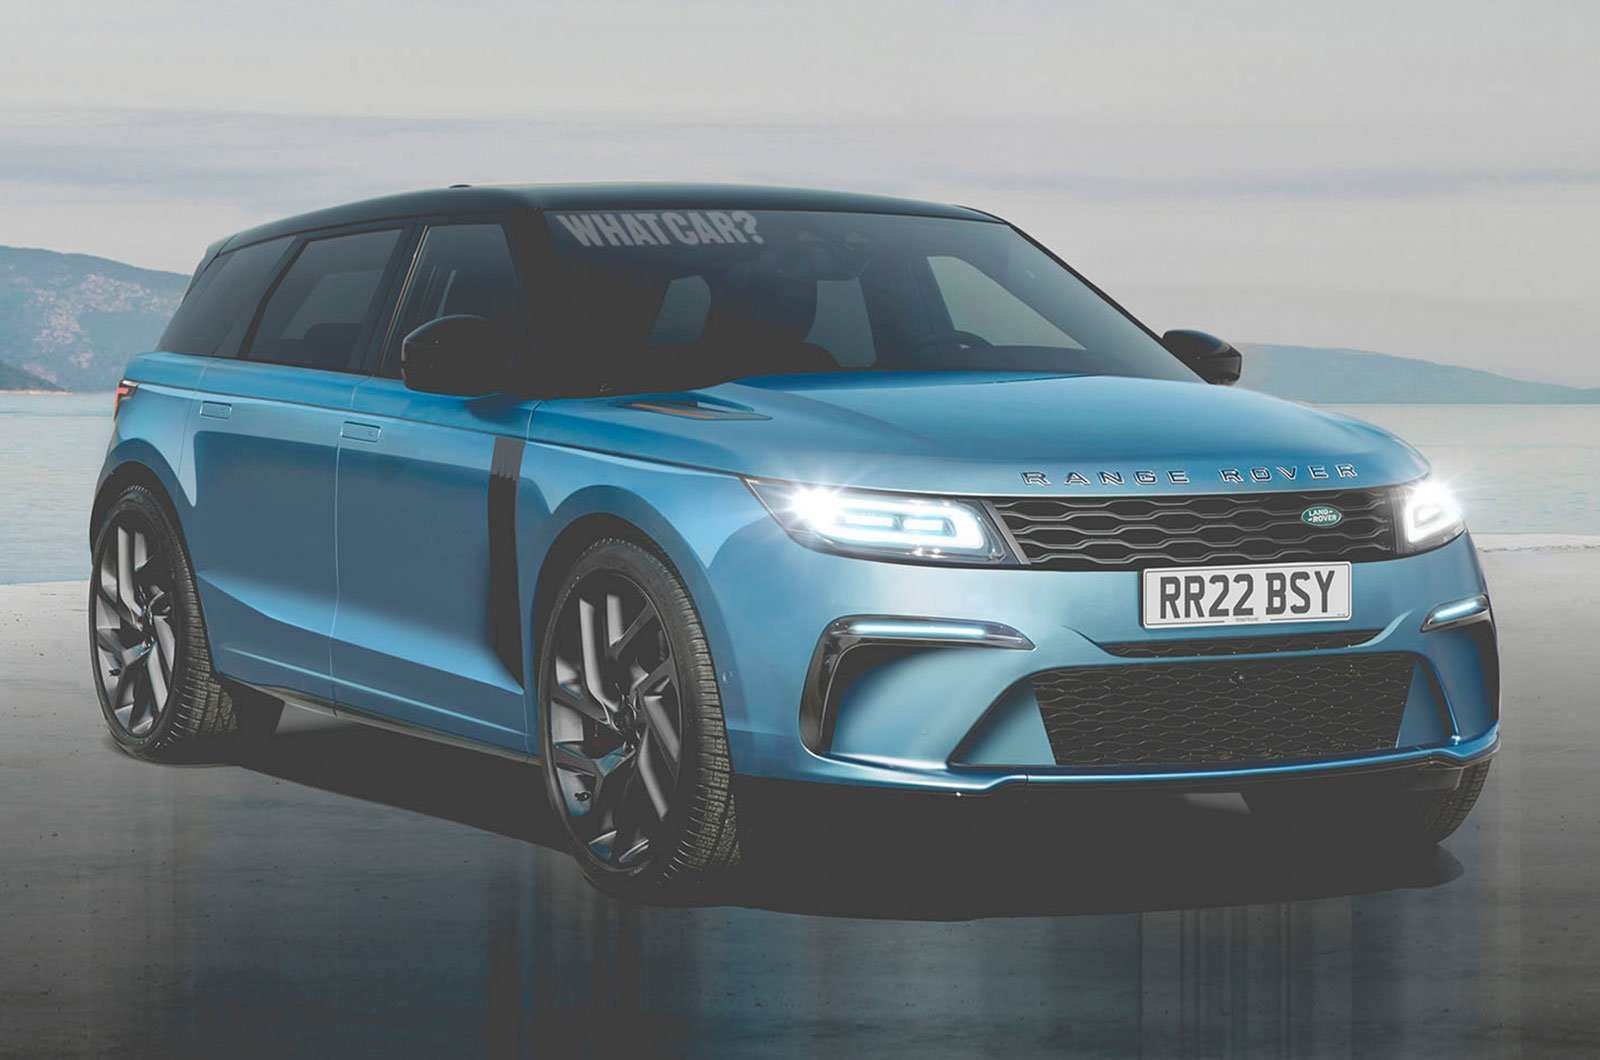 79 Best Jaguar Land Rover Electric Cars 2020 New Concept